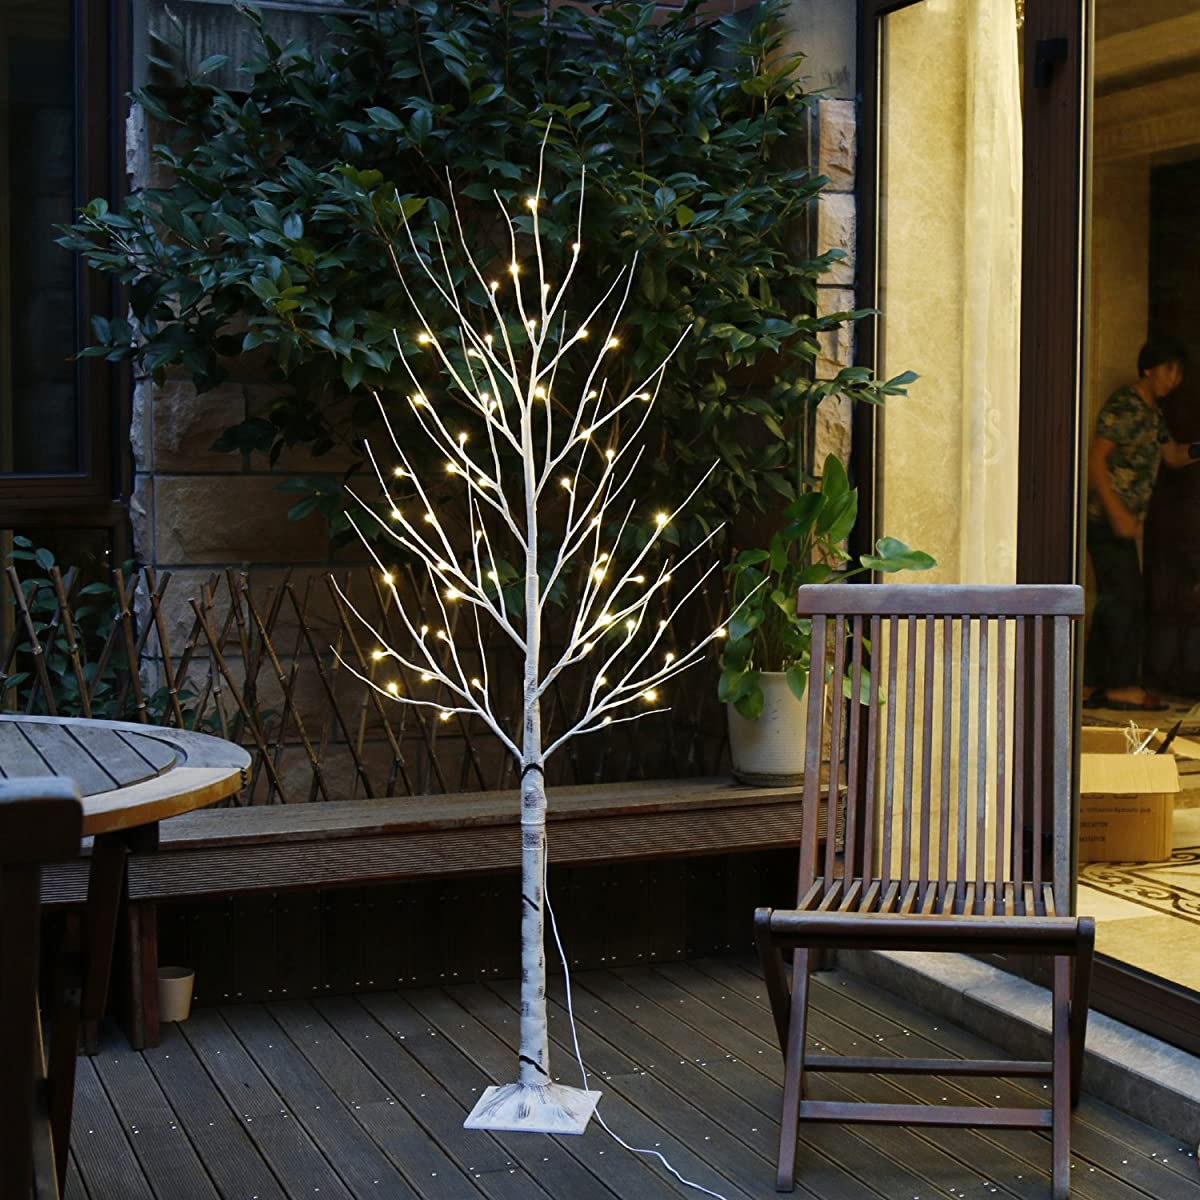 EAMBRITE Warm White LED Tree Light Winter Wedding Home Decorative Tree Light for Indoor and Outdoor Use (5FT Birch Tree Lights)